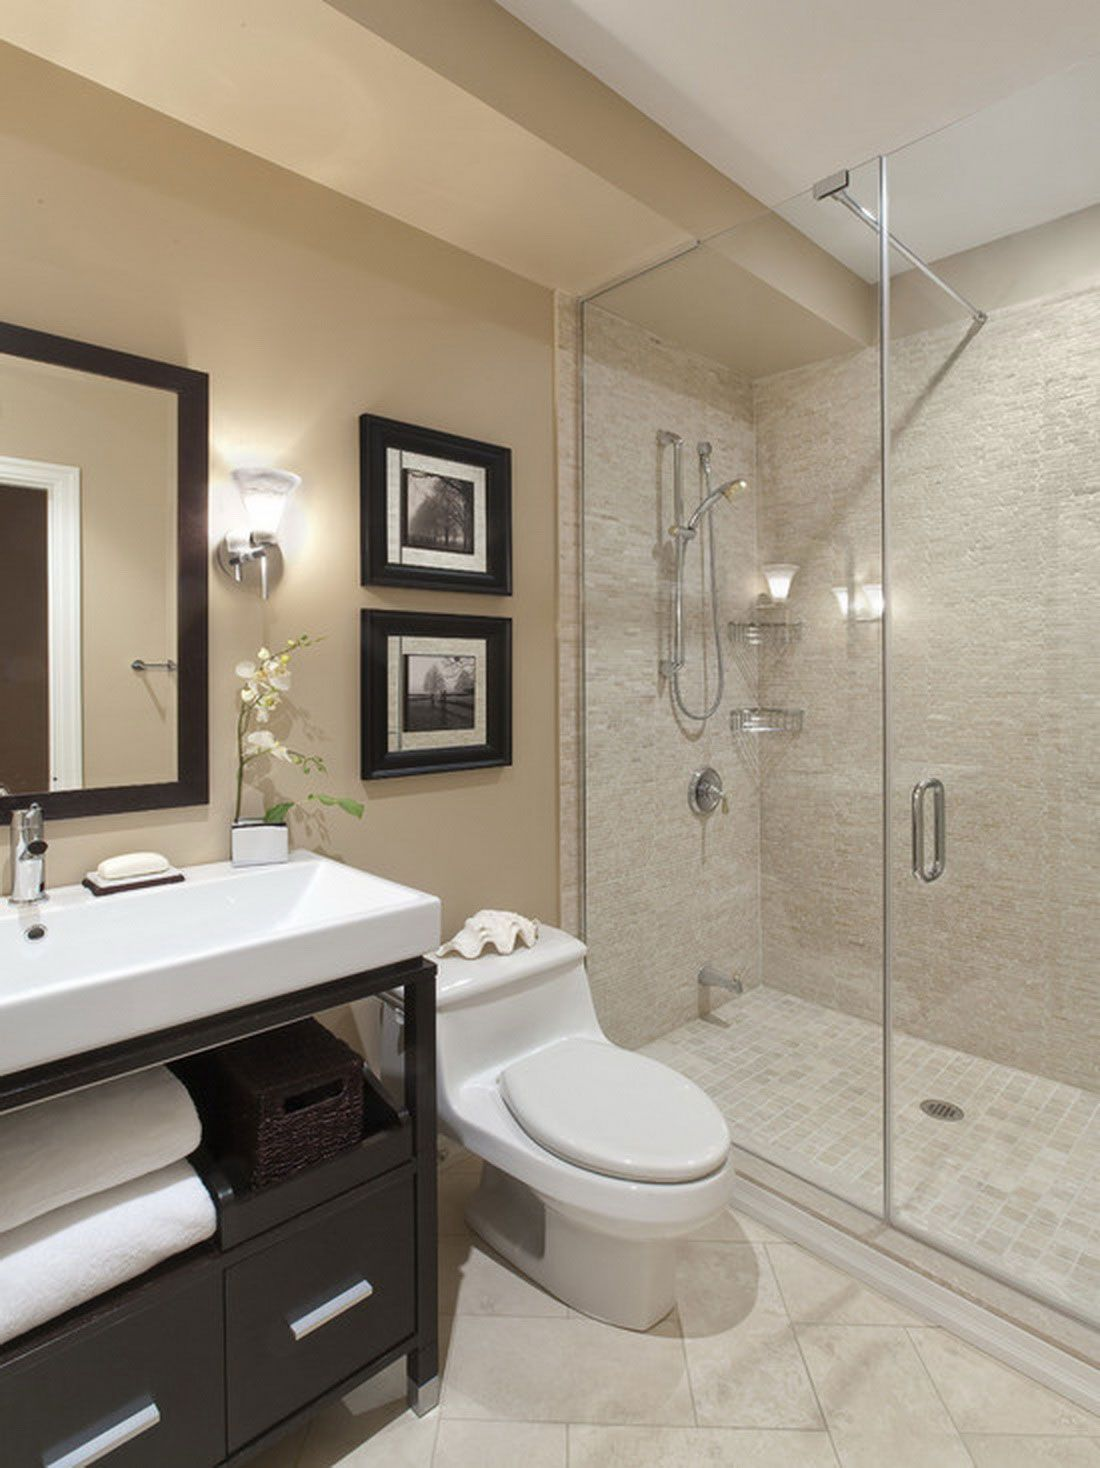 15 extraordinary transitional bathroom designs for any home - Modern Bathrooms Designs